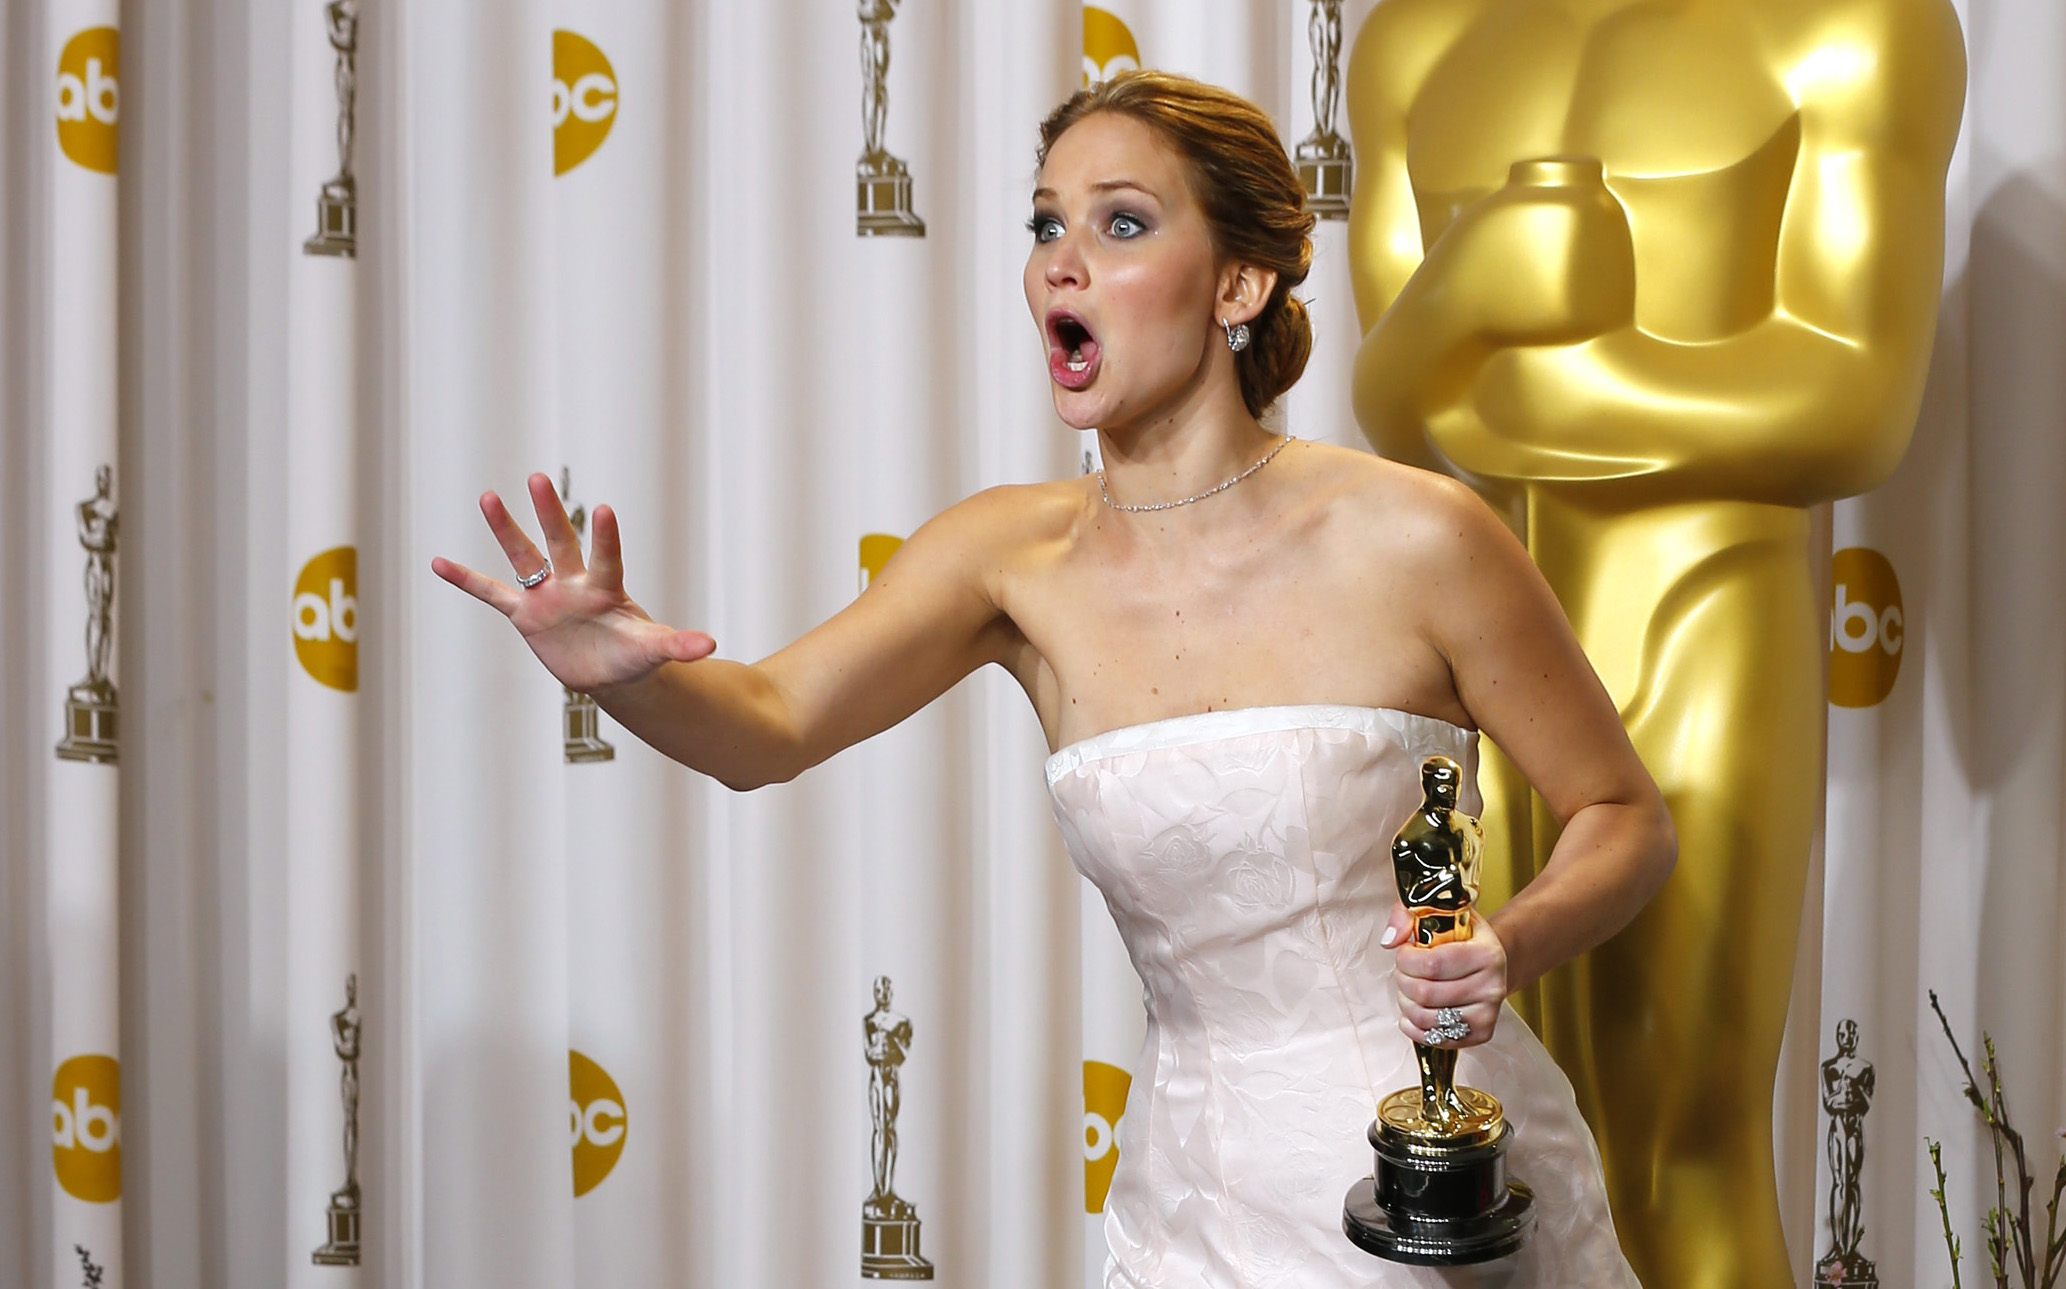 """Jennifer Lawrence, best actress winner for her role in """"Silver Linings Playbook,"""" reacts after photographers made a picture of her making an obscene gesture as she took the stage in the photo room with her Oscar at the 85th Academy Awards in Hollywood, California February 24, 2013    REUTERS/Mike Blake (UNITED STATES  - Tags: ENTERTAINMENT)  (OSCARS-BACKSTAGE) - RTR3E9DL"""